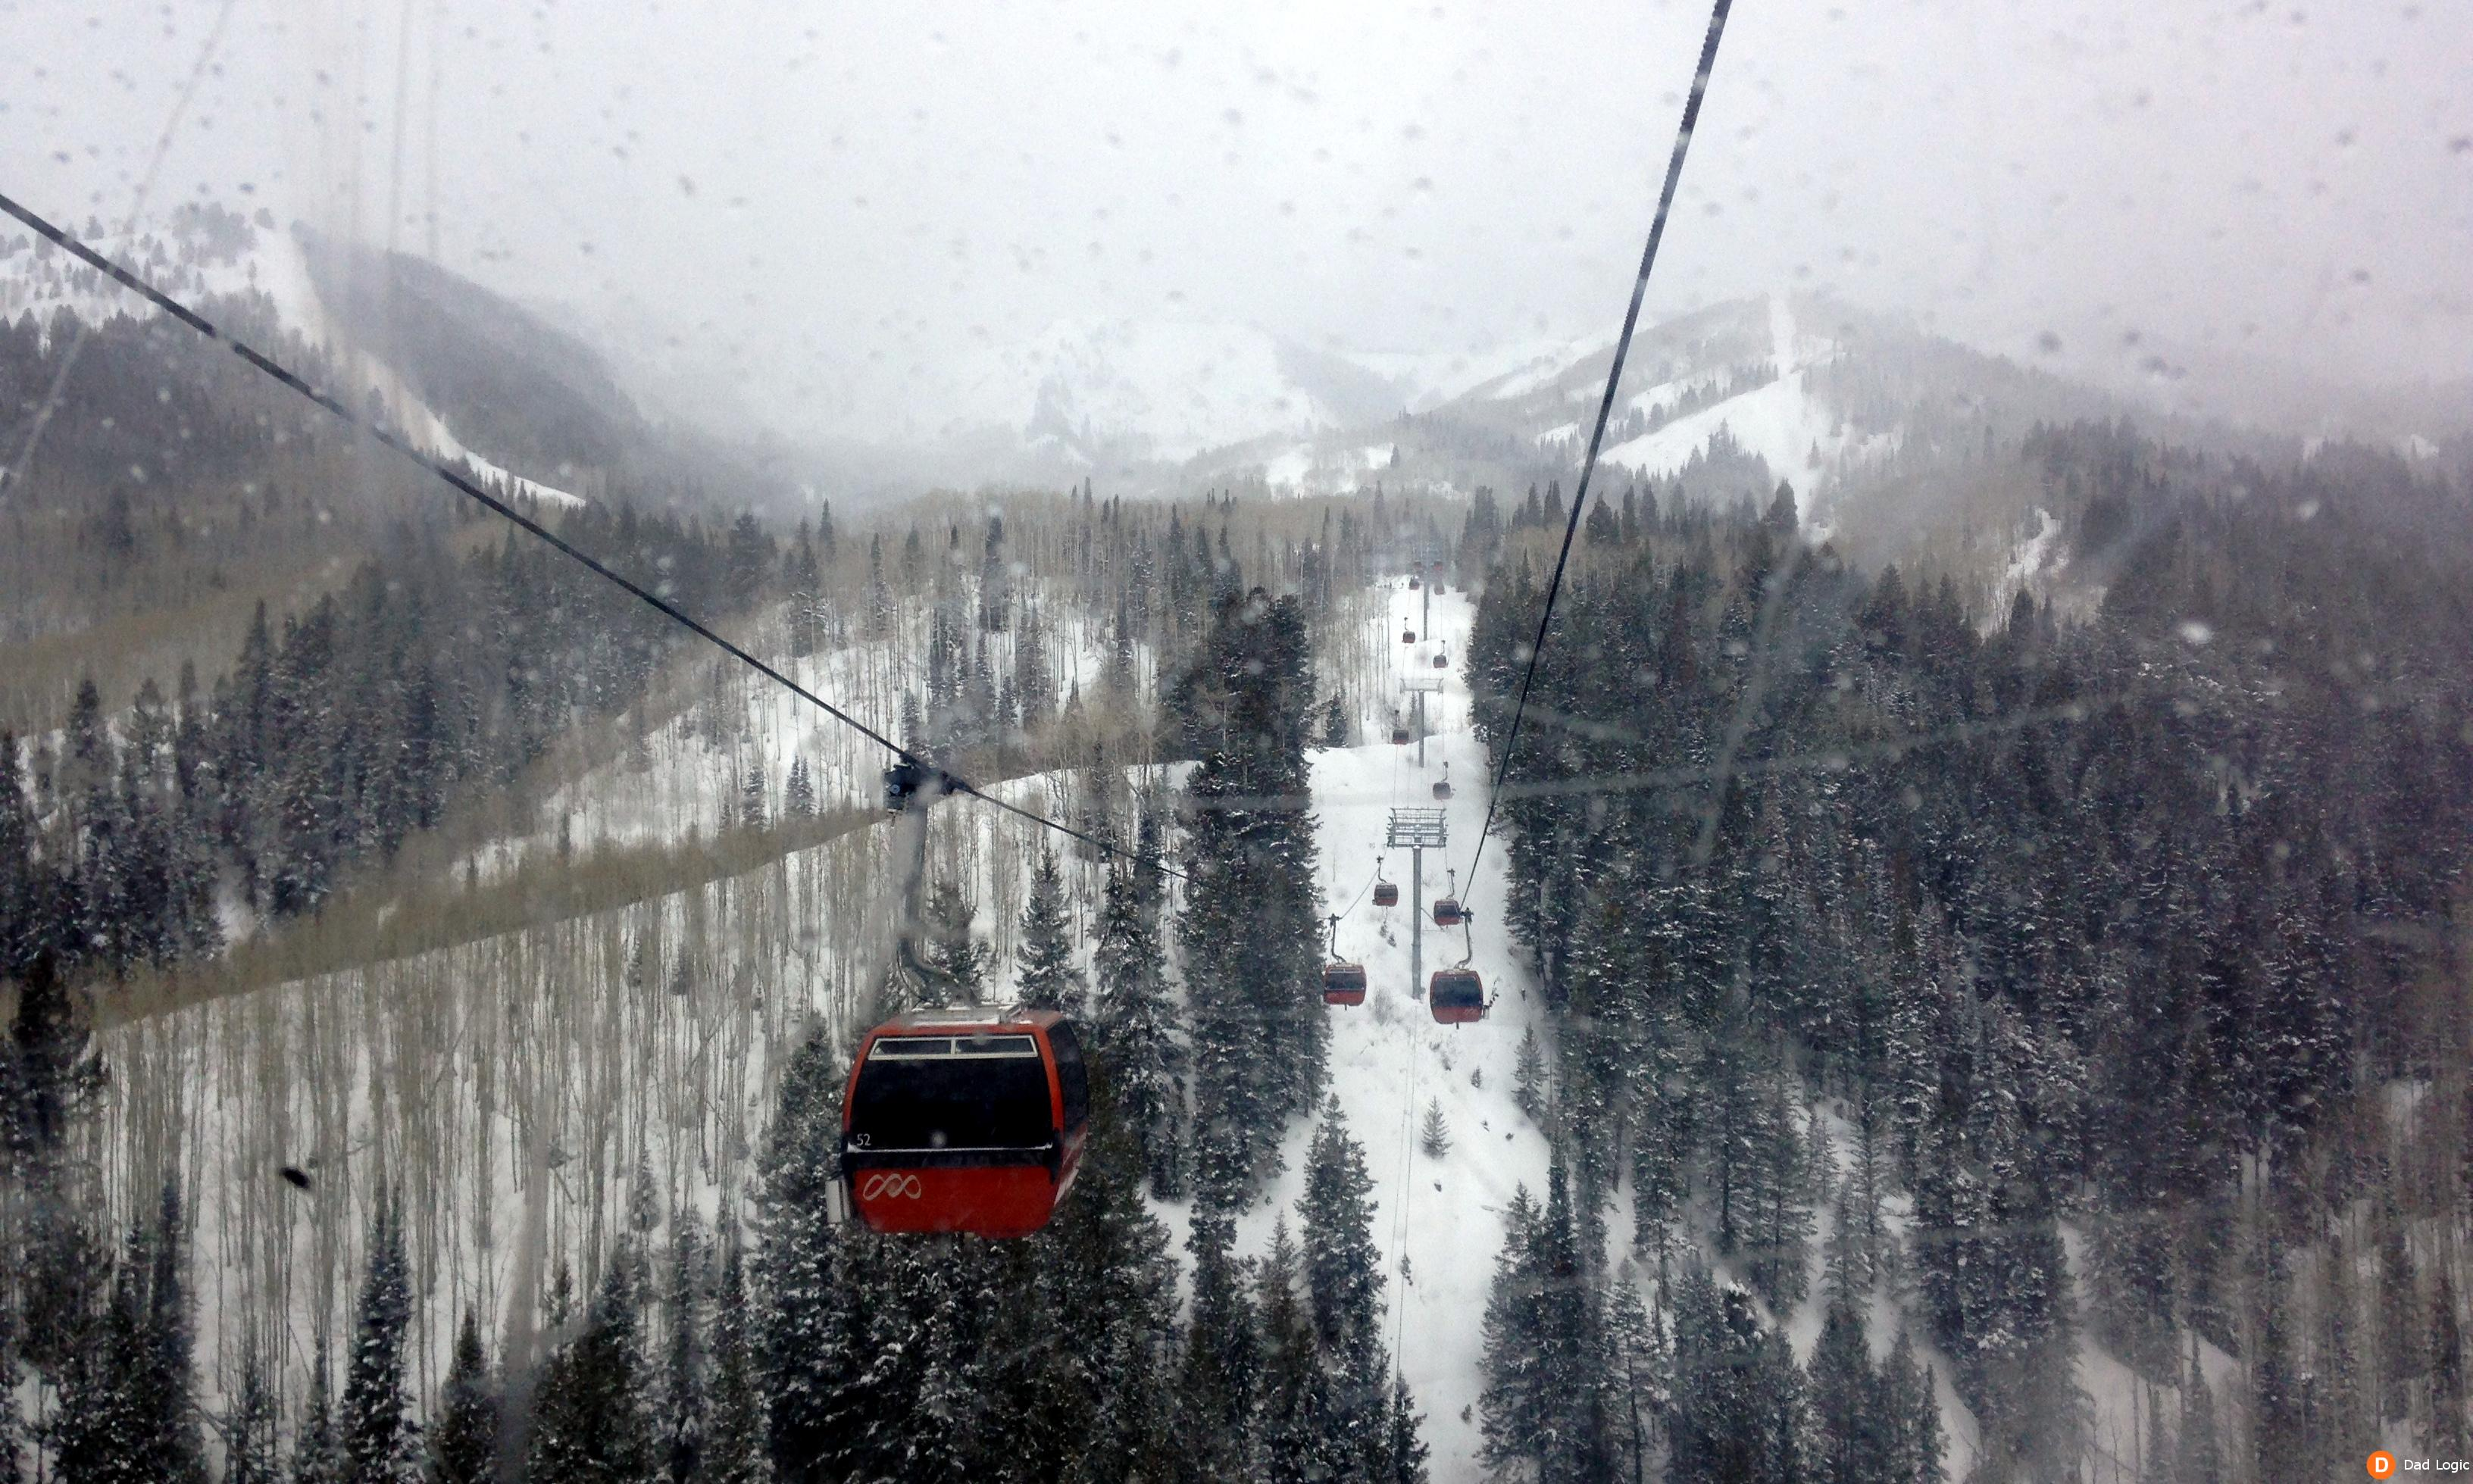 10 reasons why we love the canyons resort in park city utah - dad logic